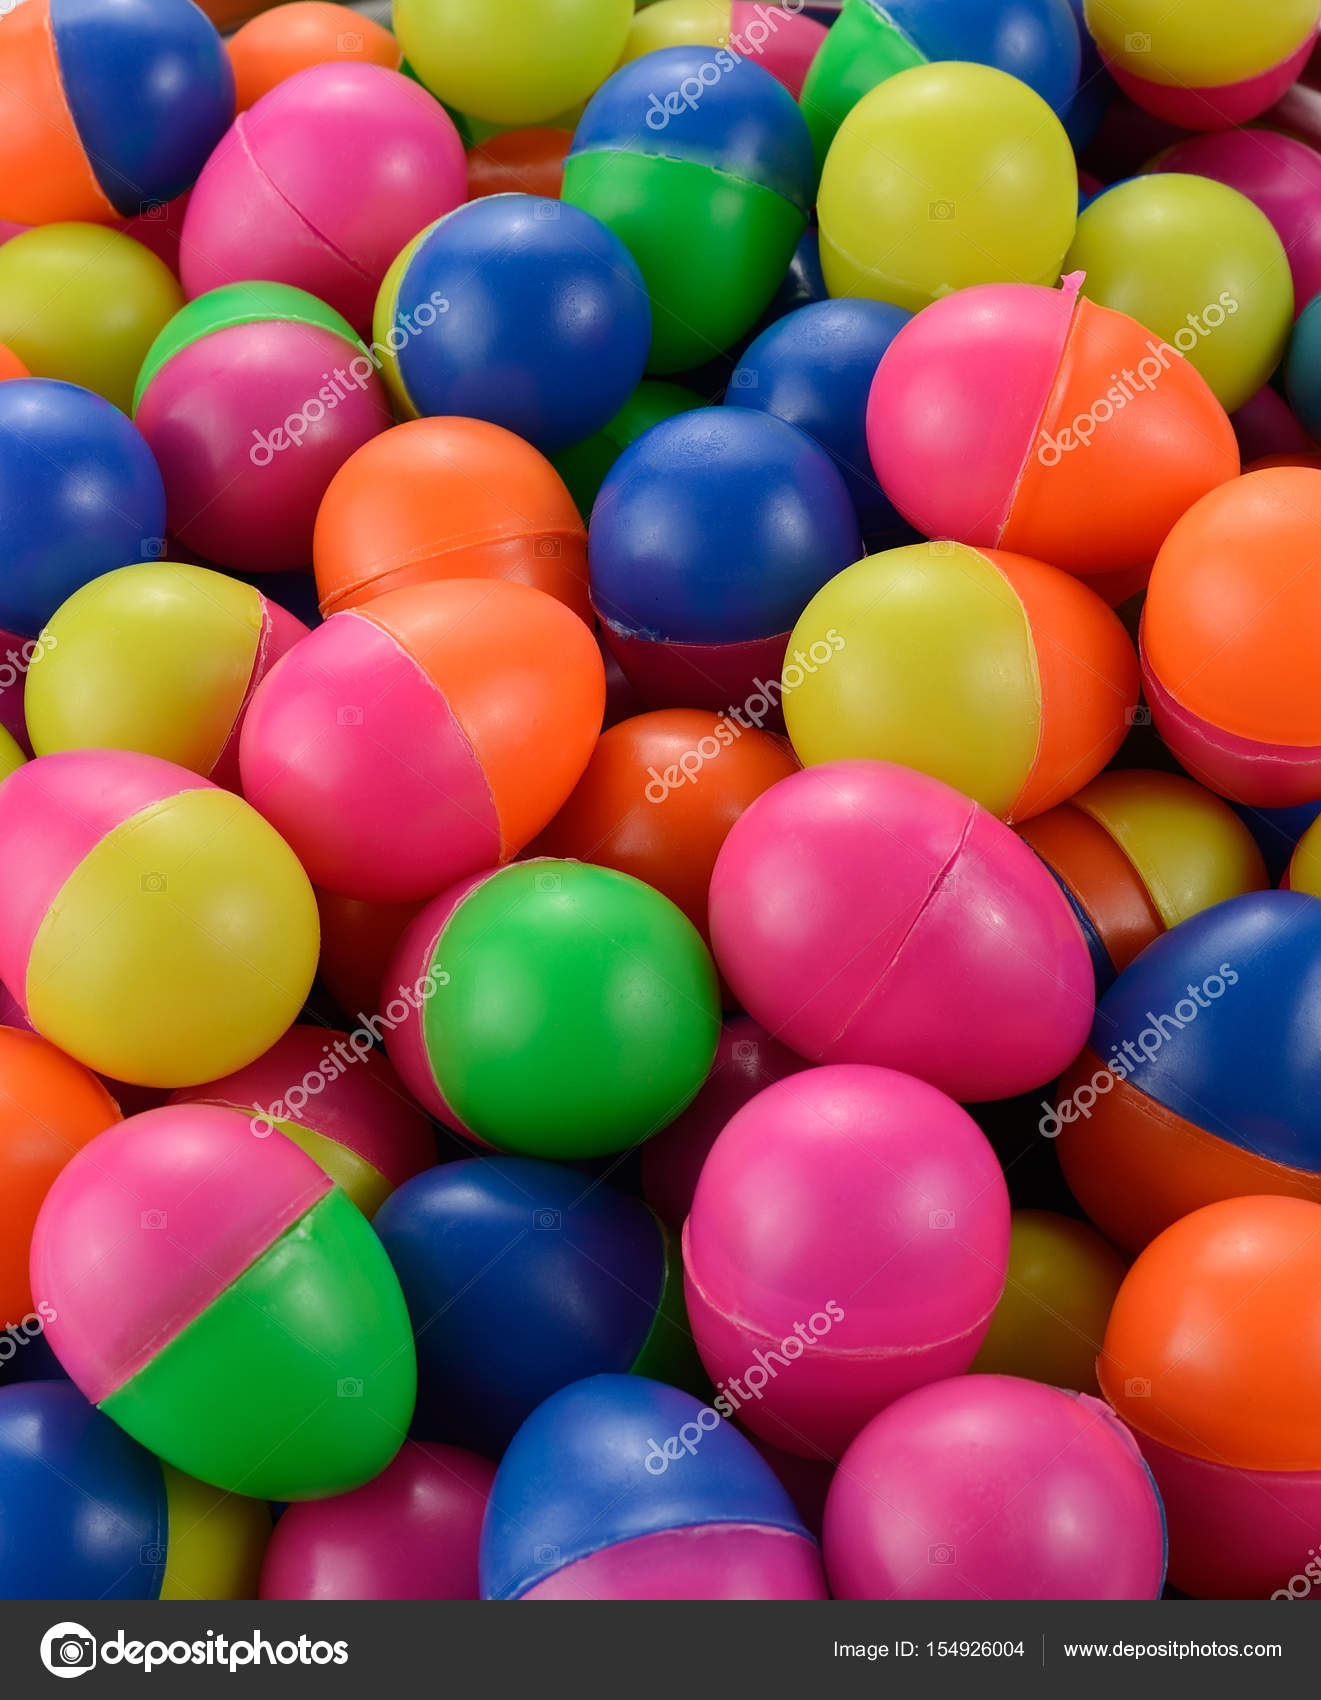 Colorful Candy Plastic Easter Eggs Photo By Big8183gmail